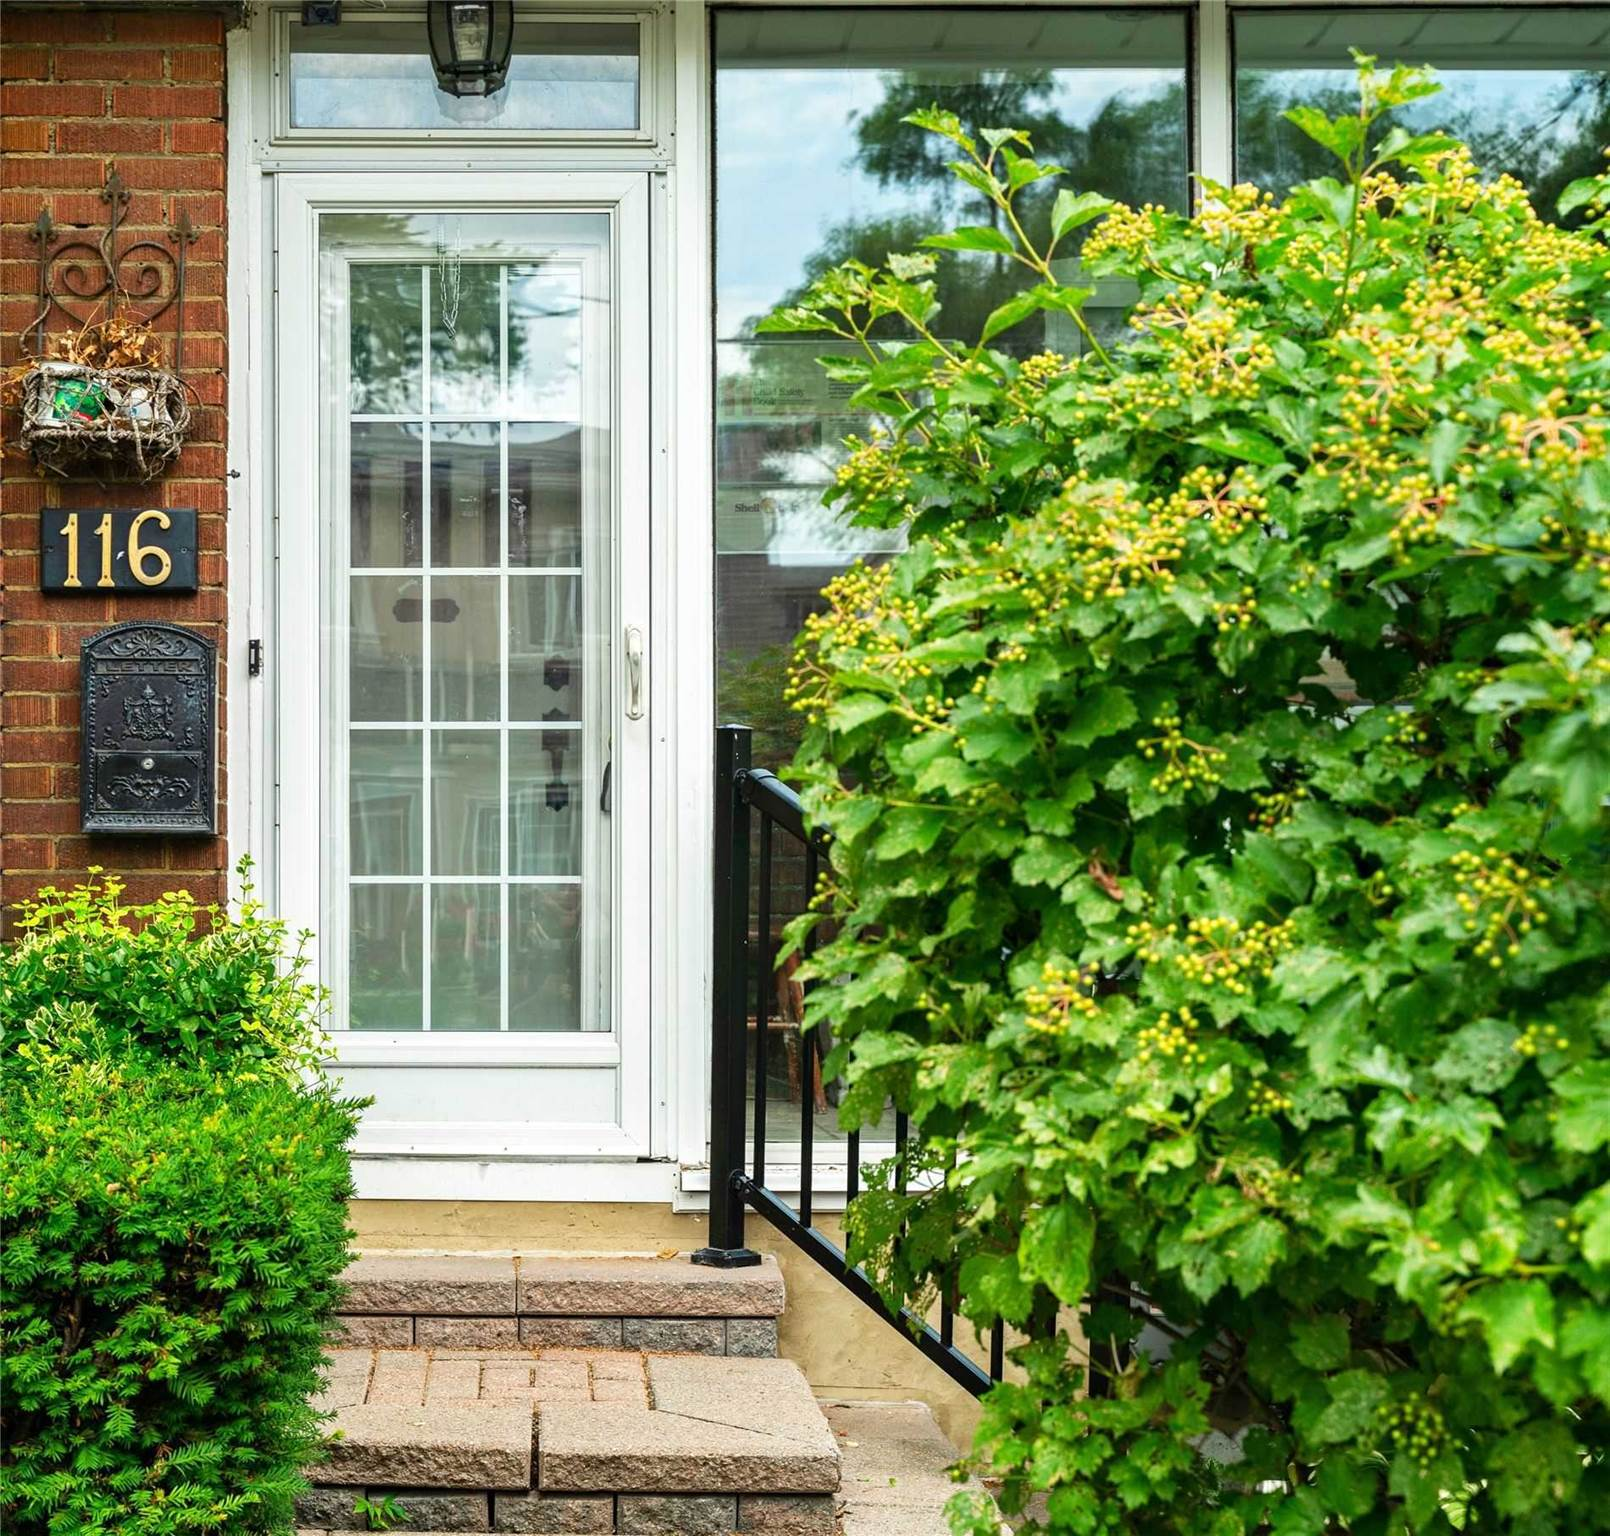 116 Mortimer Ave, Toronto, Ontario, For Sale